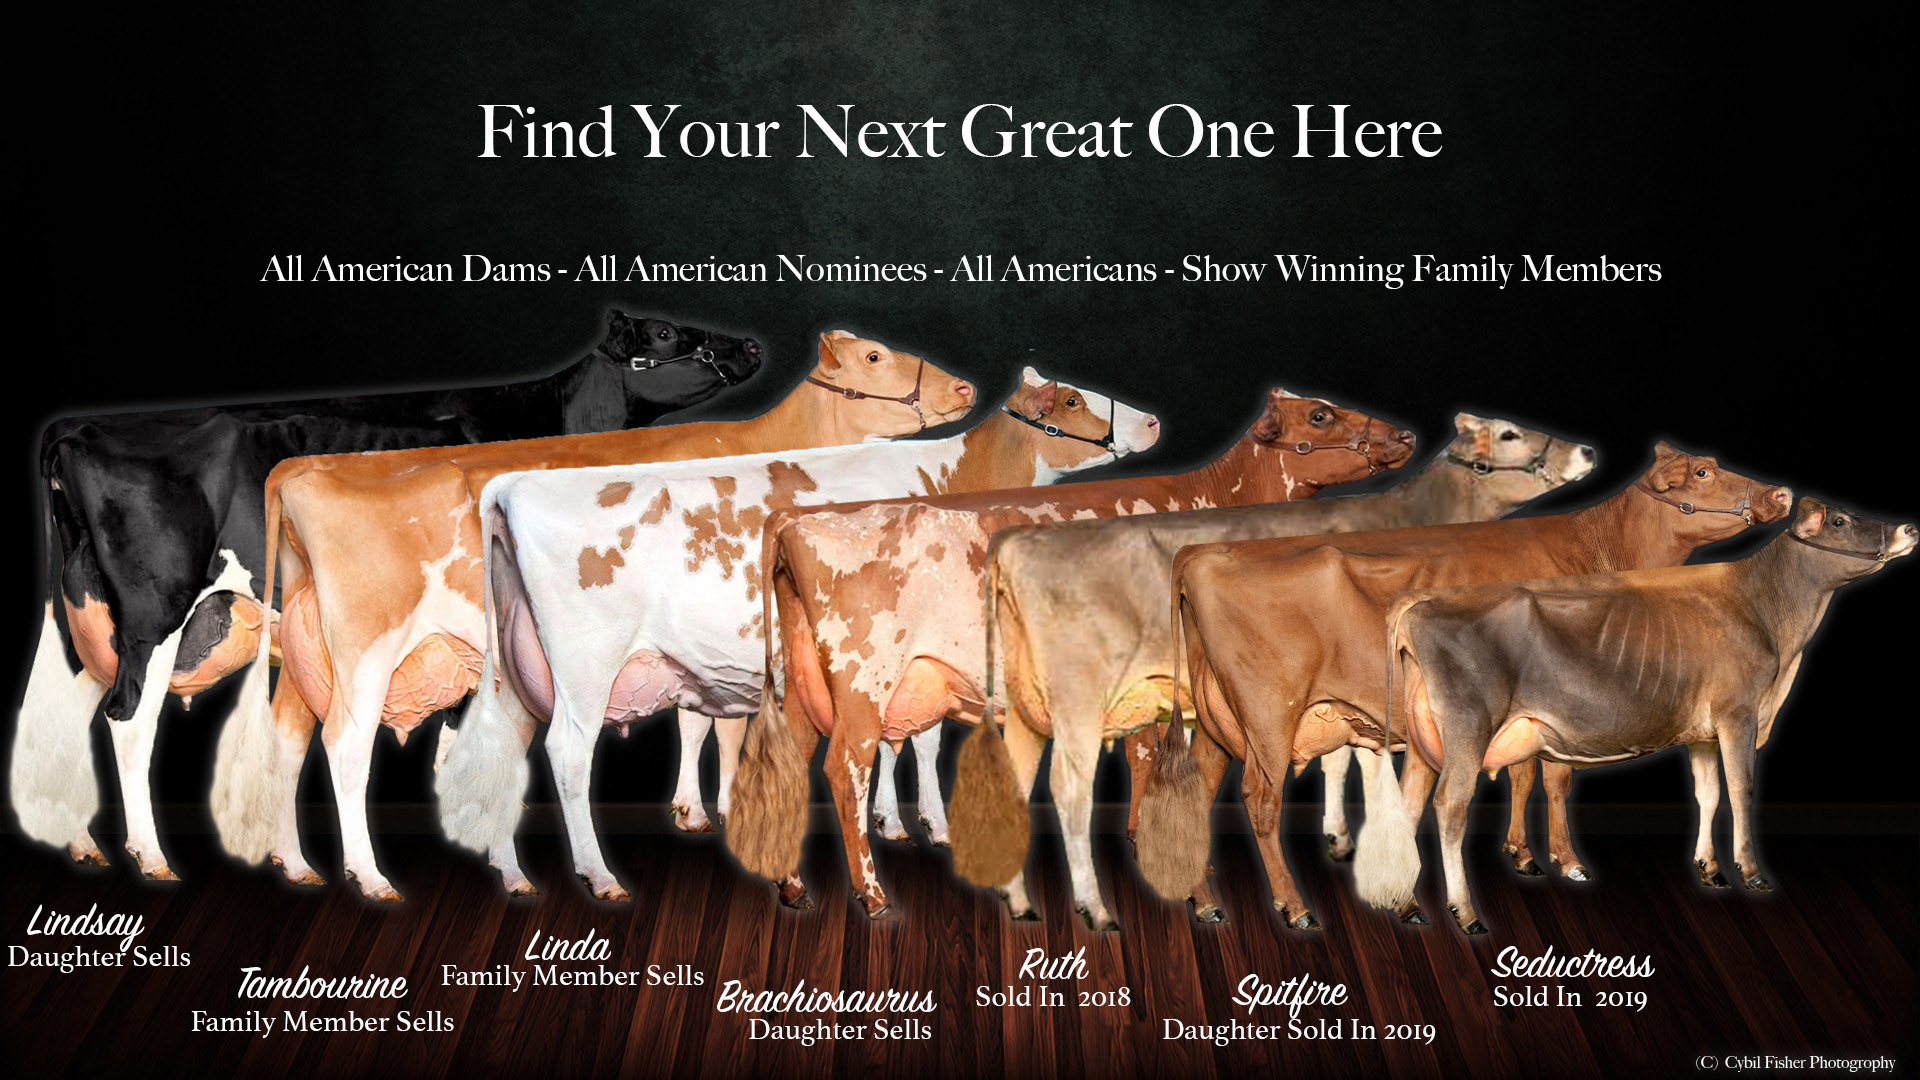 Find your next great one here - all american dams, all american nominees, all american show winning family members